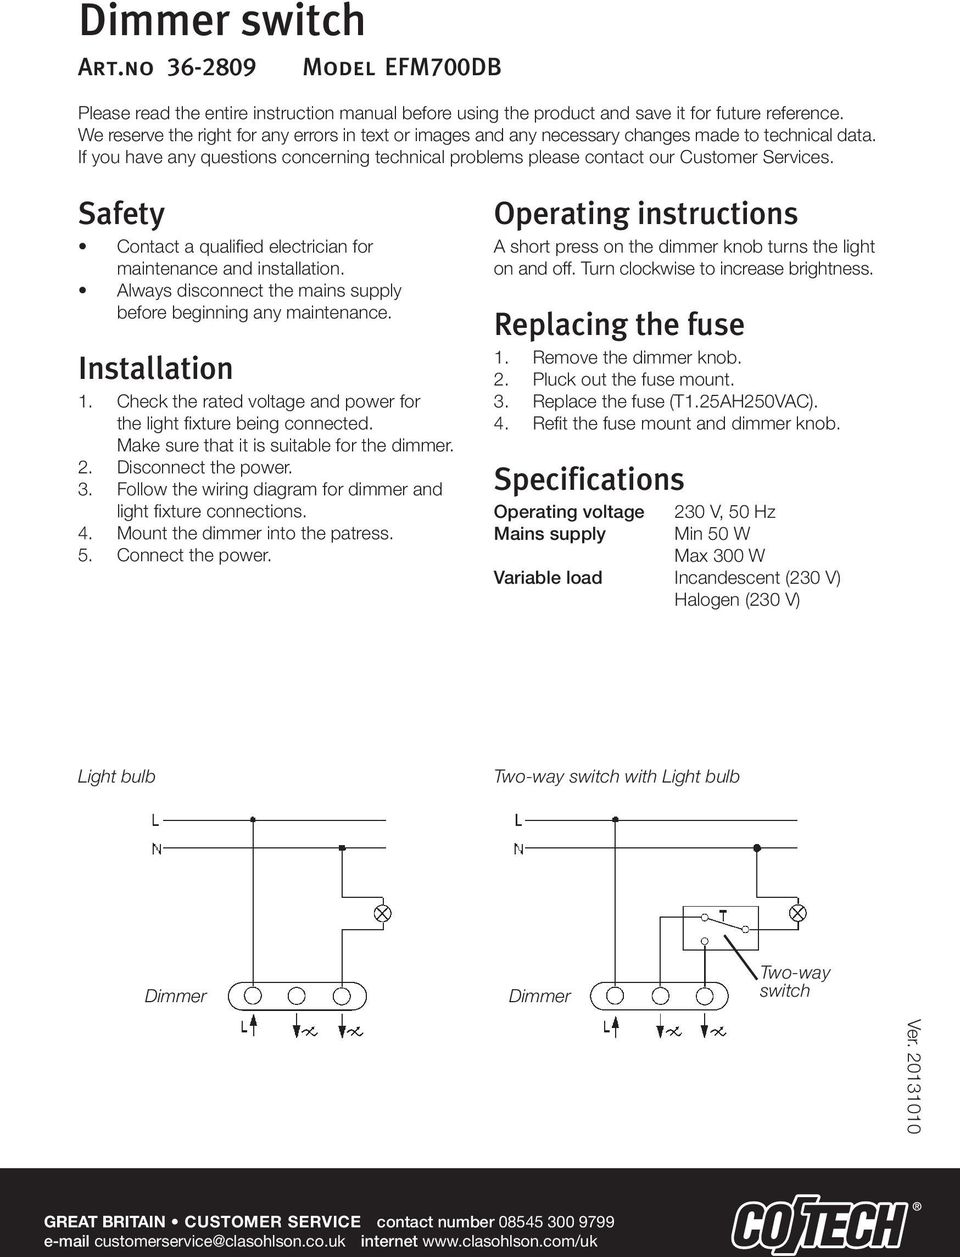 Dimmer Switch Operating Instructions A Short Press On The Diagram Safety Contact Qualified Electrician For Maintenance And Installation Always Disconnect Mains Supply Before